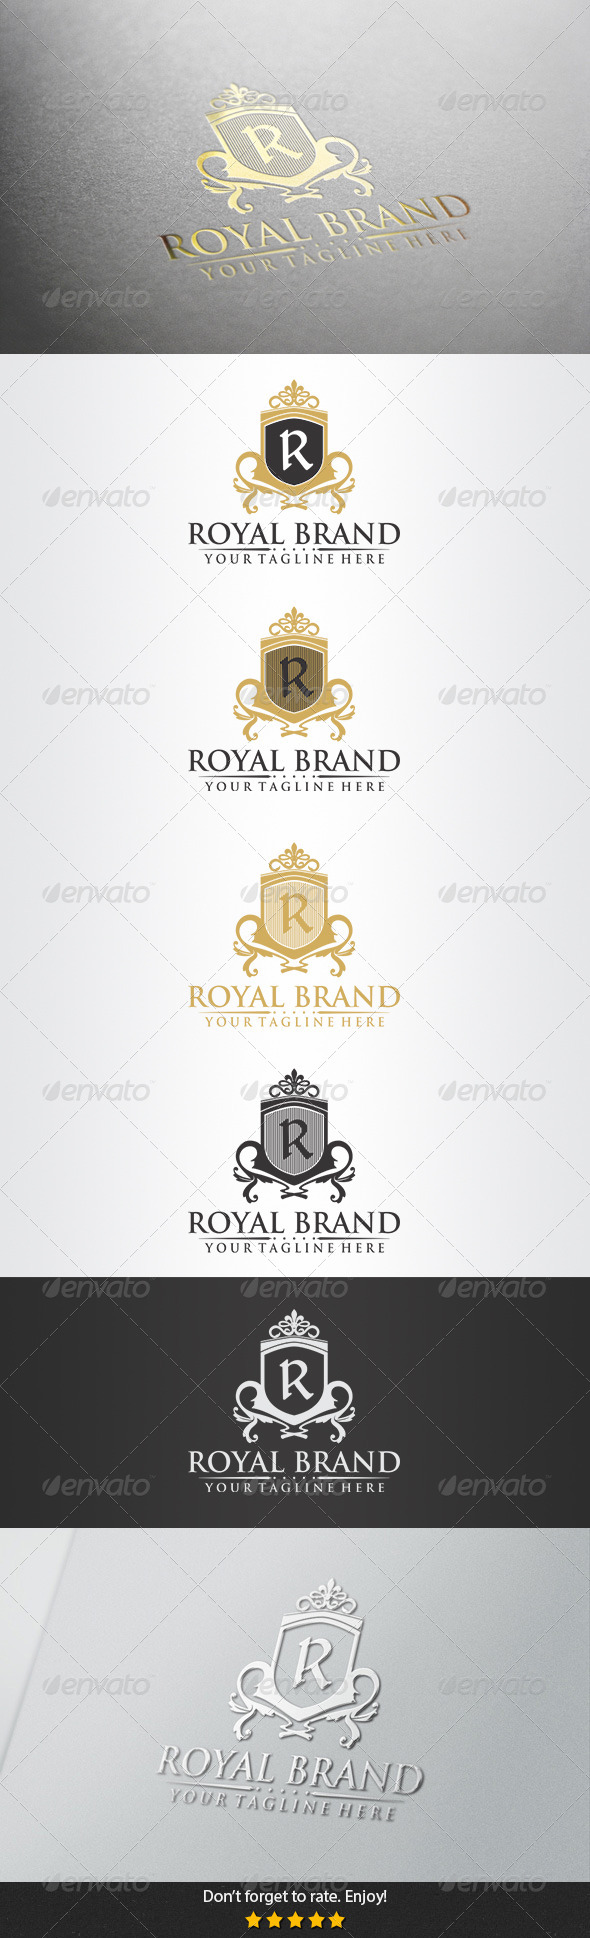 GraphicRiver Royal Brand Logo 5380974